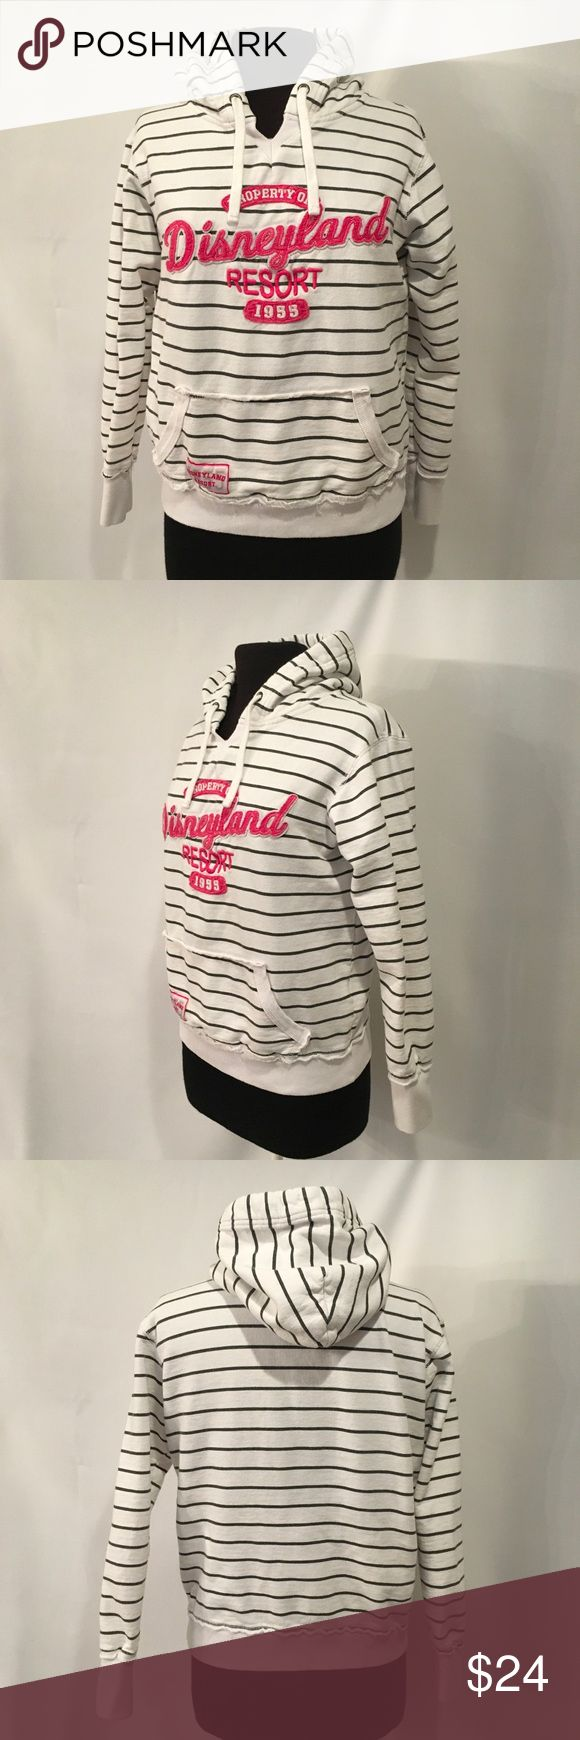 """Authentic Disney Resort Pullover Hoodie White with black stripes Disney parks long sleeve pullover hoodie. Property of Disneyland resort sewn on in hot pink on the front of the hoodie. Worn for a few hours at the park then washed.  Size Ladies Large  Bust 44"""" around  Underarm to bottom of hem 15"""".                 80%cotton and 20% Polyester   EUC  Non smoking environment No stains, snags or damage M 1576 /1.15 Disney Tops Sweatshirts & Hoodies"""